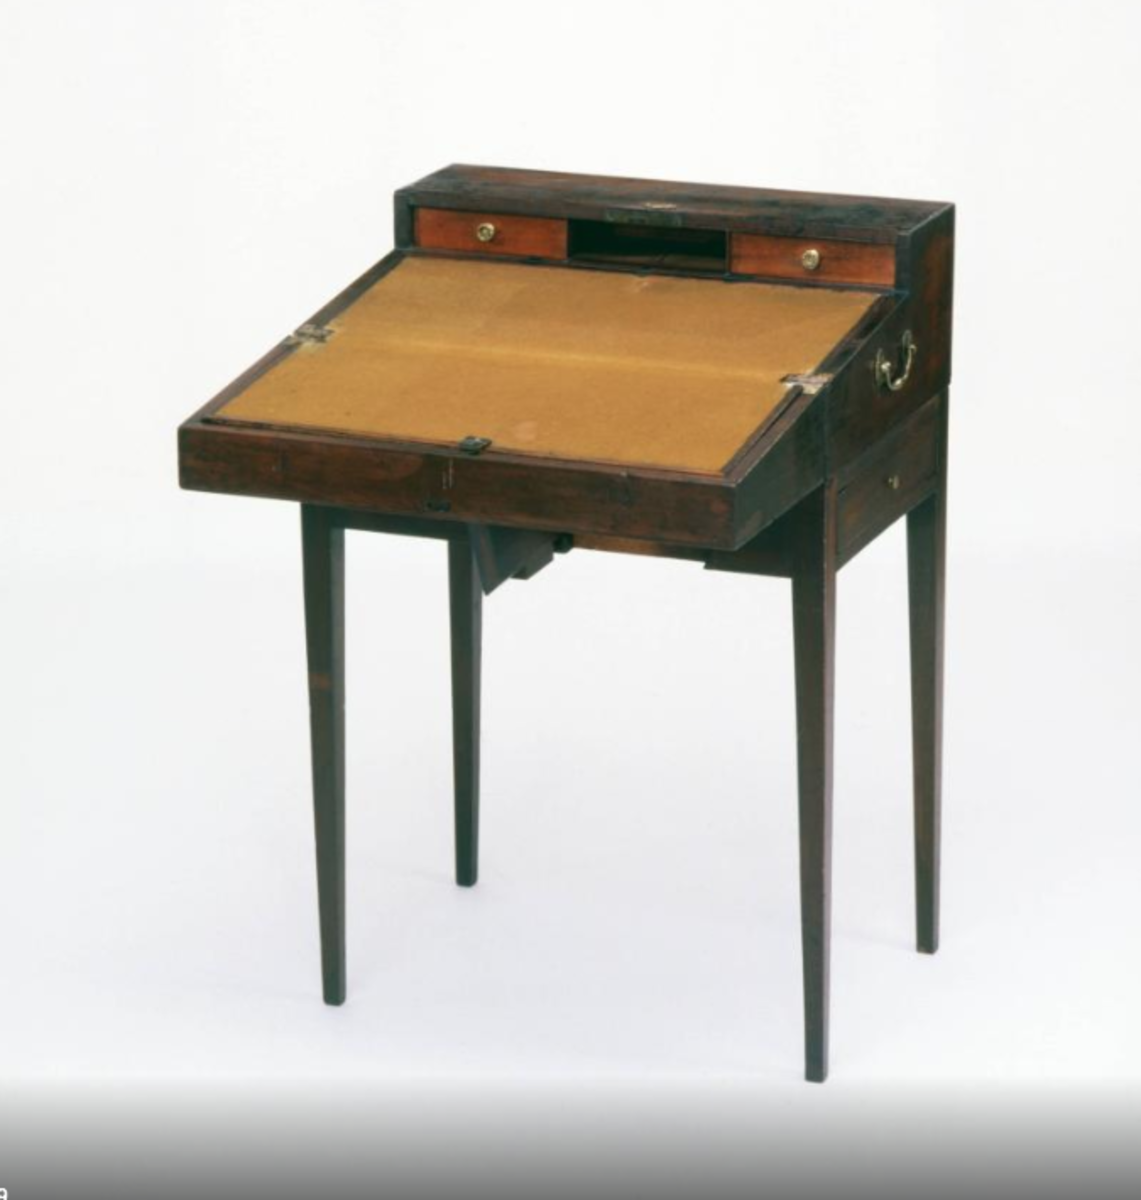 Edgar Allan Poe's writing desk